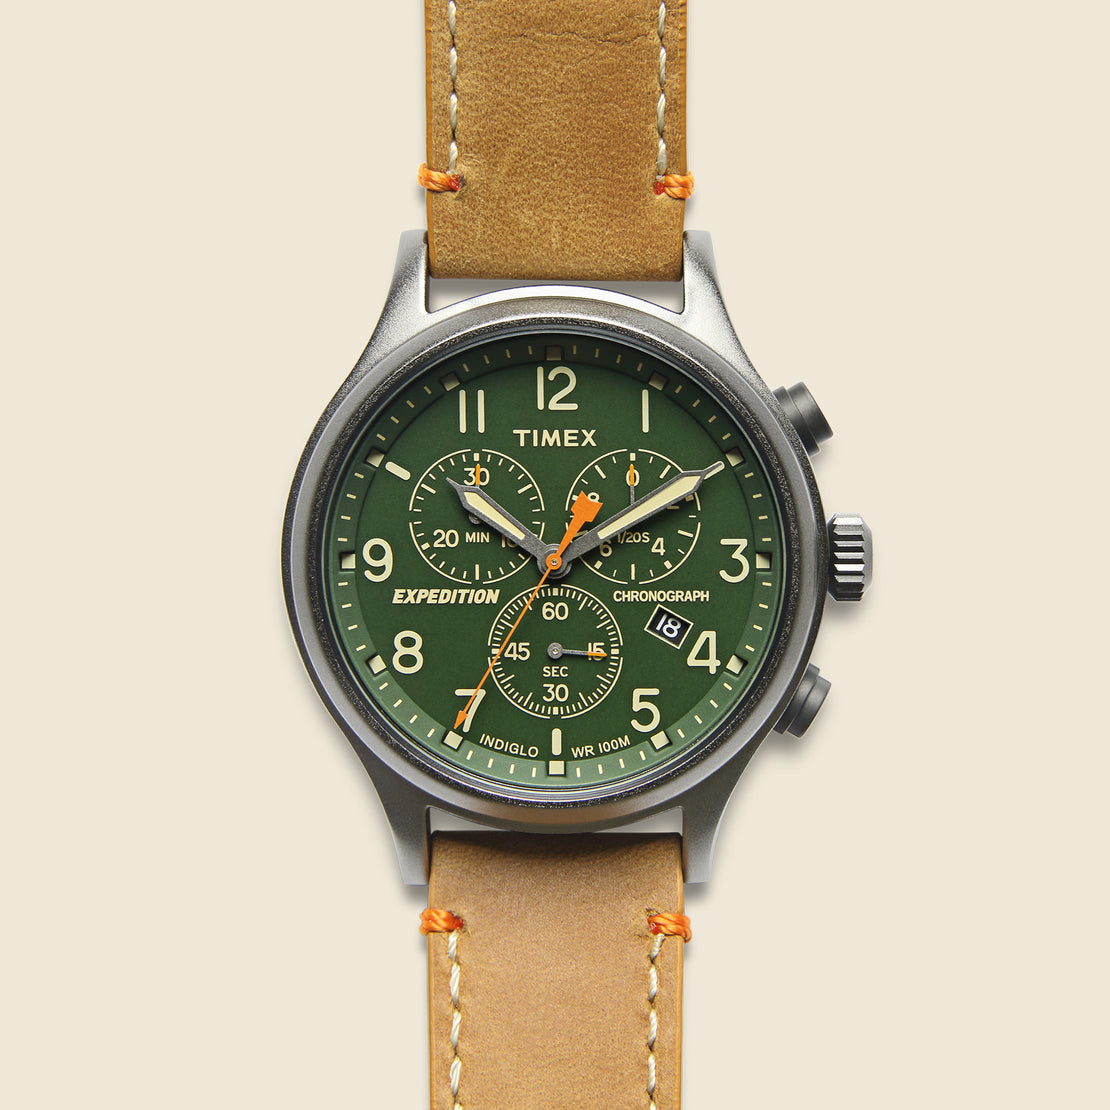 Timex Expedition Scout Chronograph Watch 43mm - Green/Tan